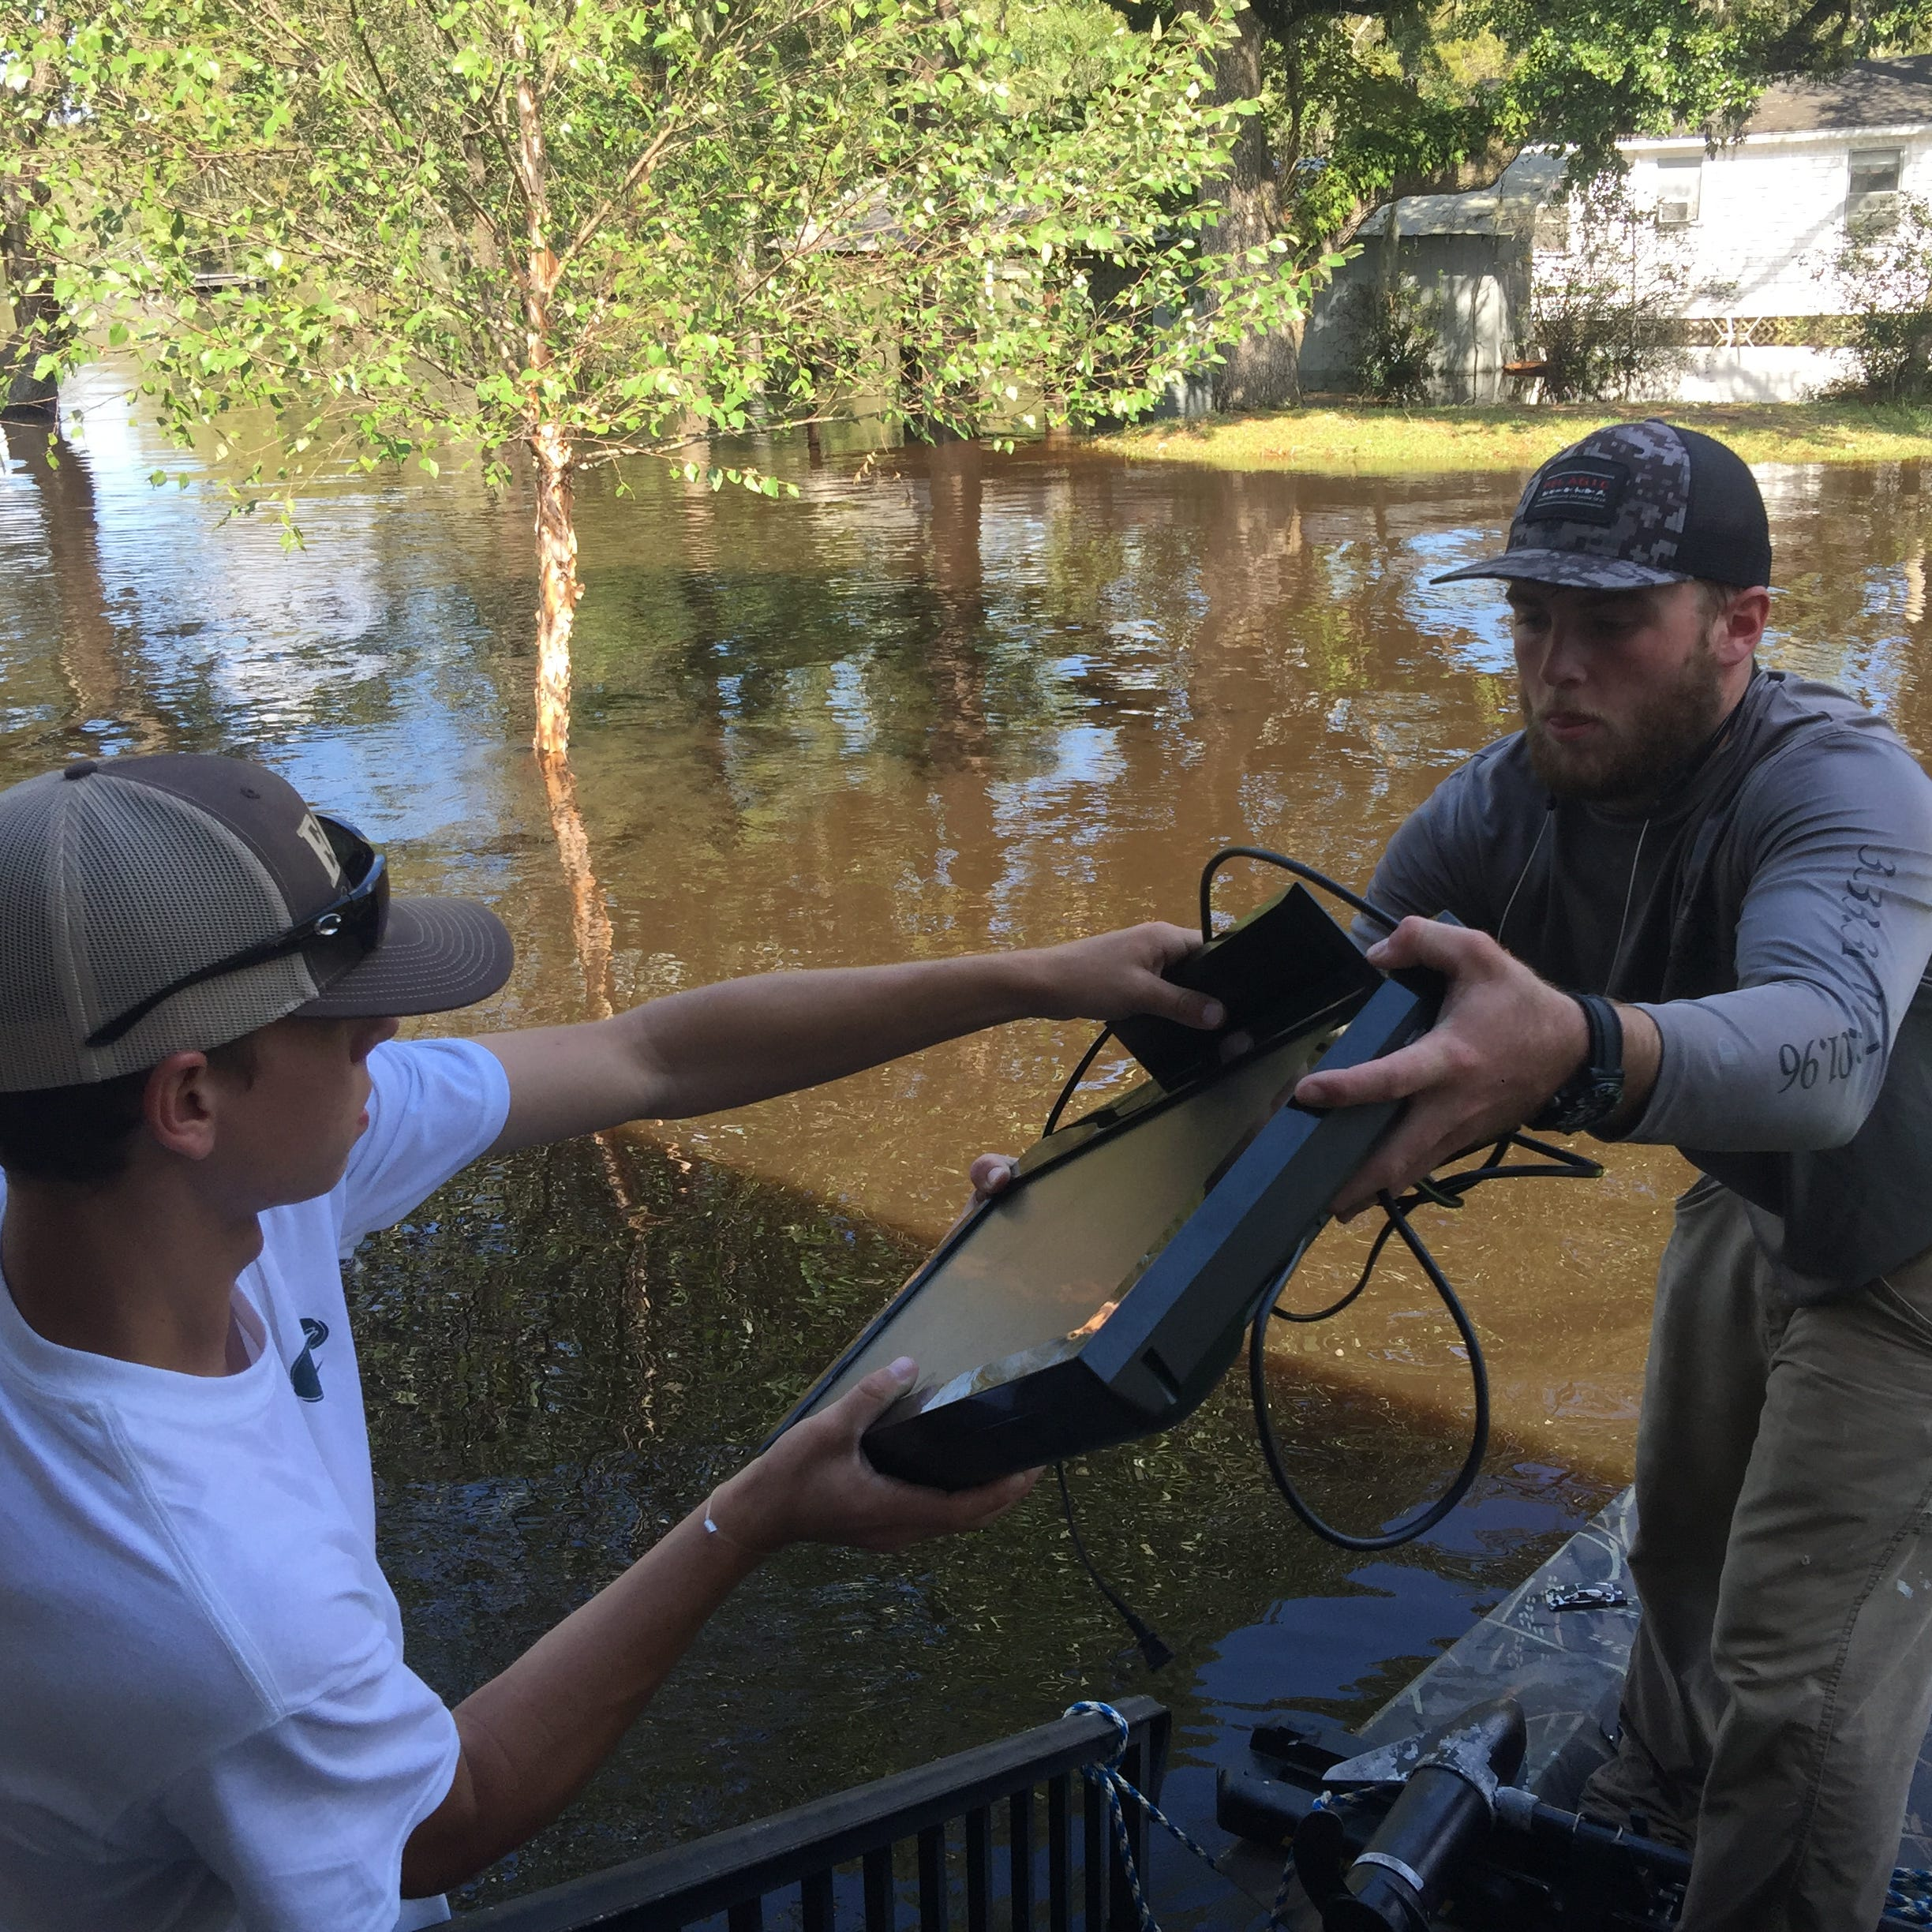 'You cry when you can': Stress mounts for Conway residents losing homes to Florence floods